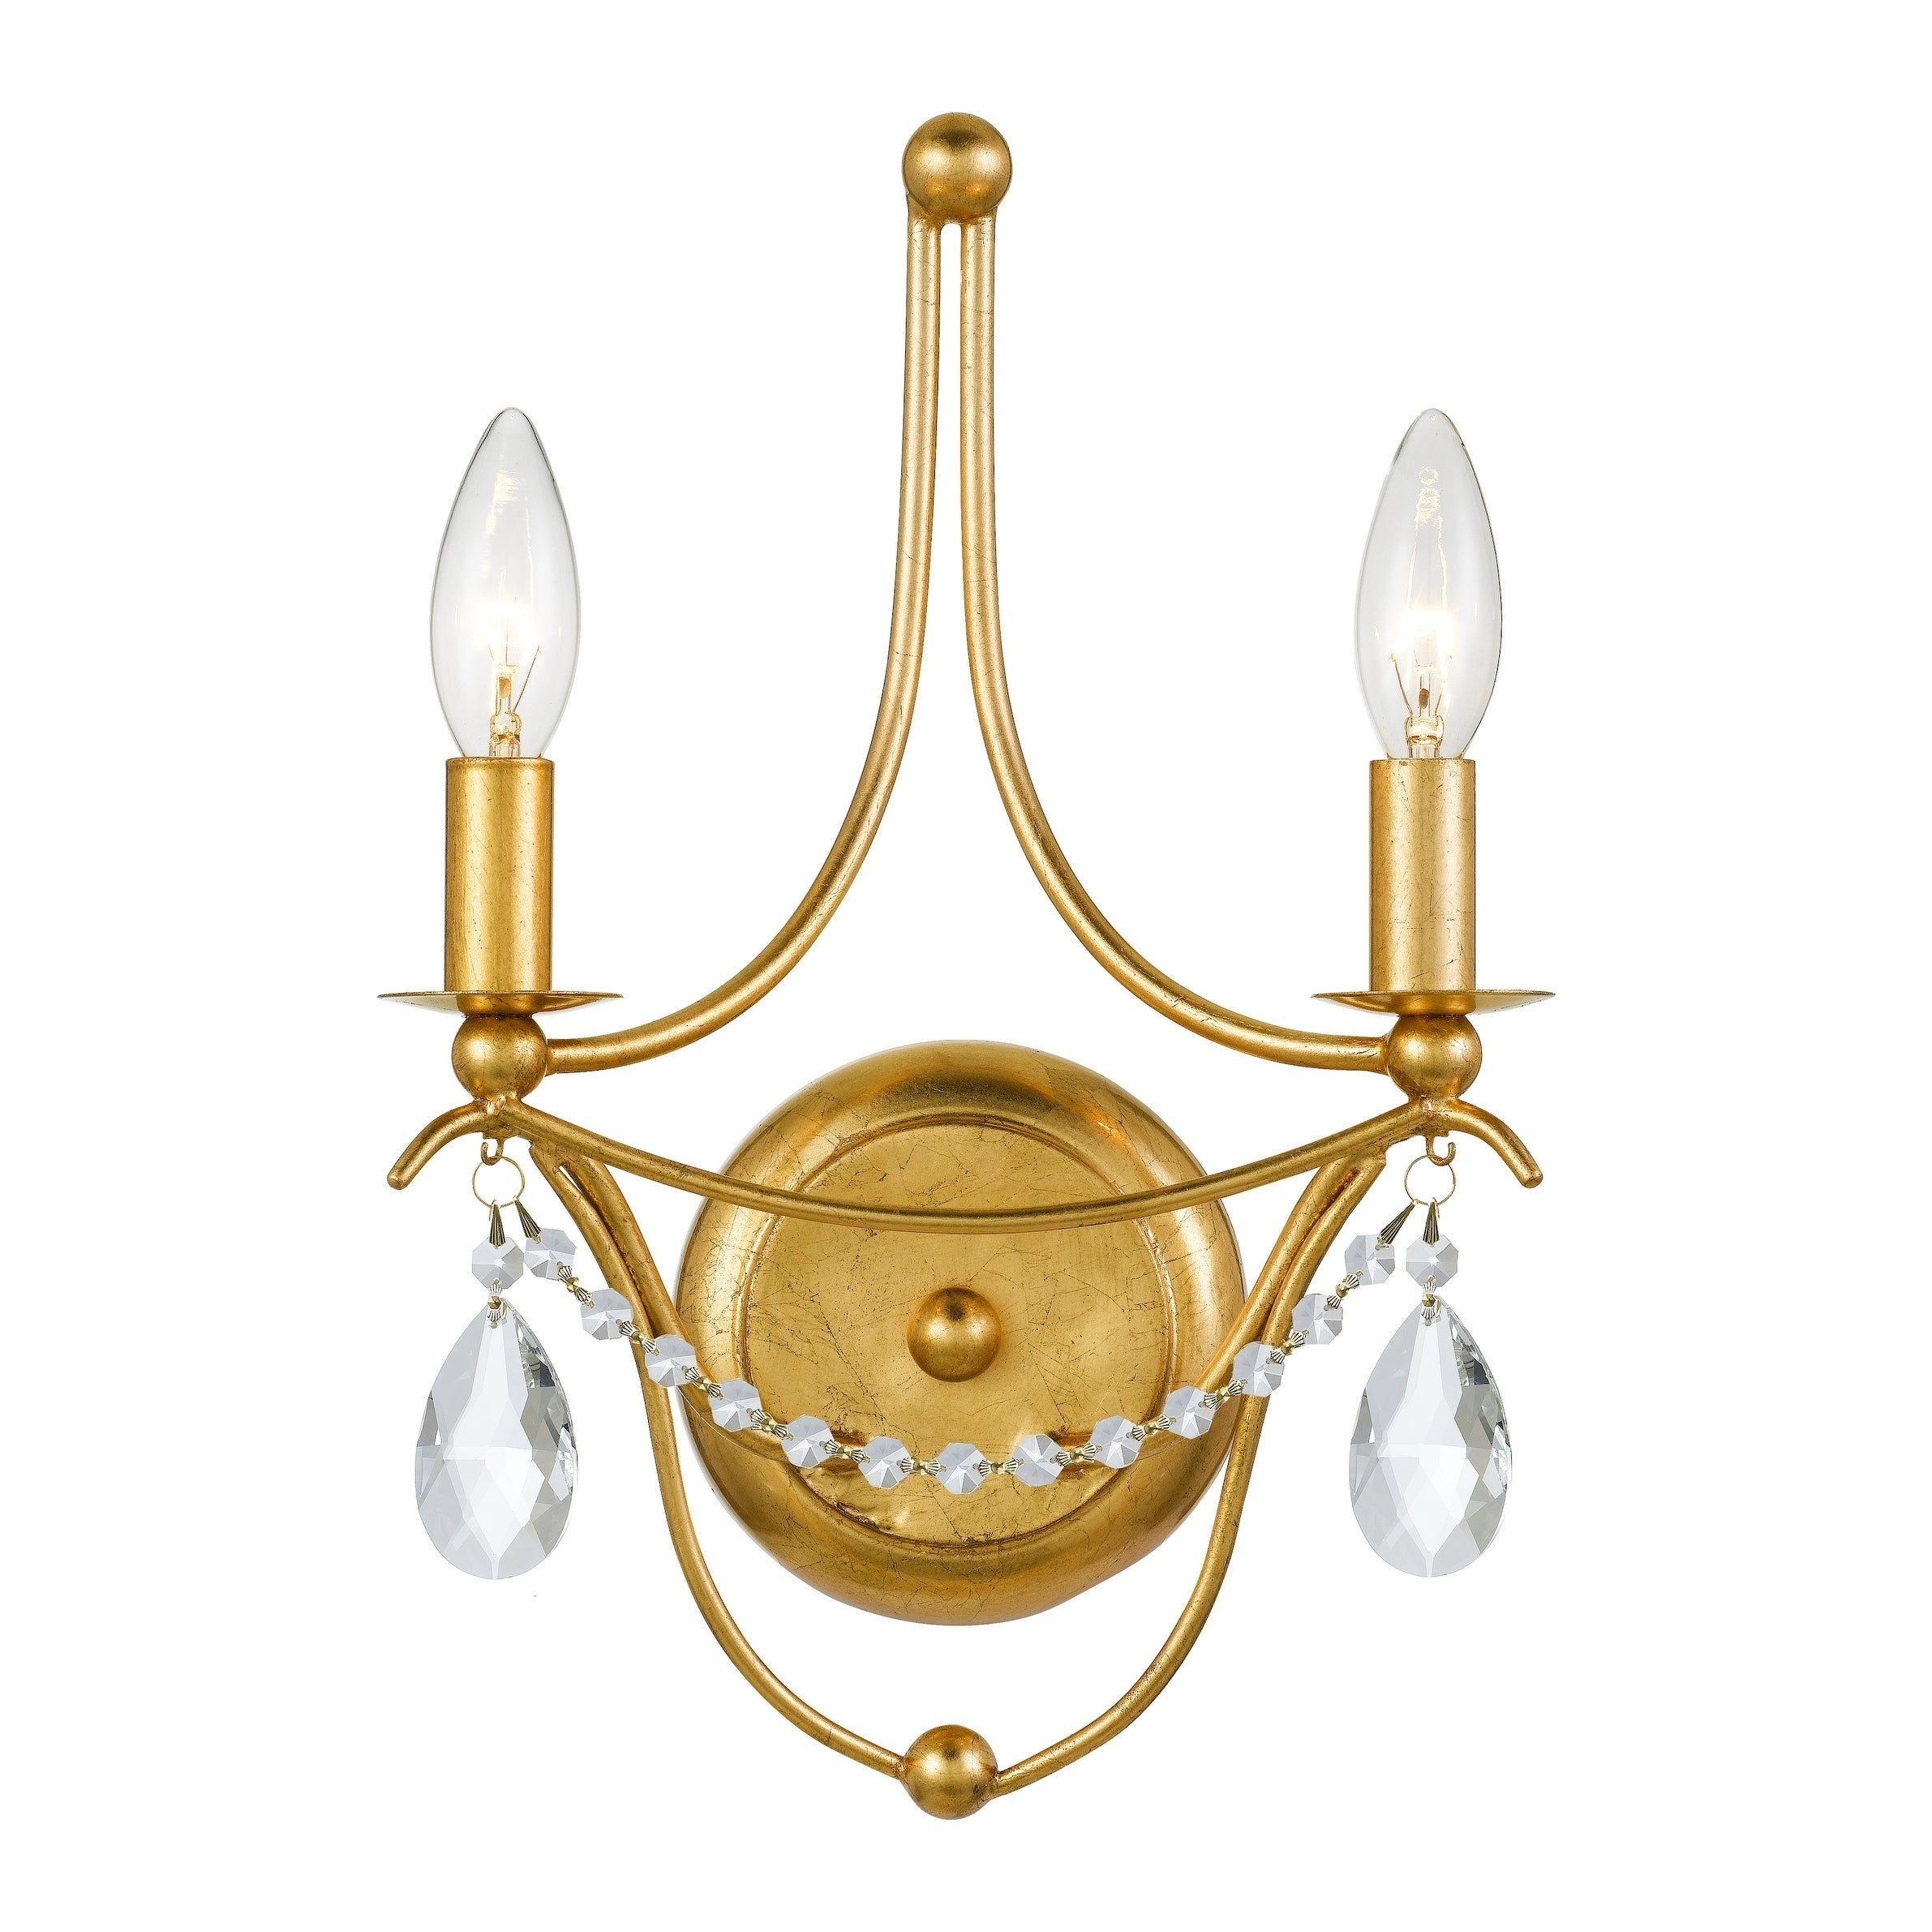 Image of: Shop Black Friday Deals On Metro 2 Light Antique Gold Spectra Crystal Wall Sconce Overstock 28962647